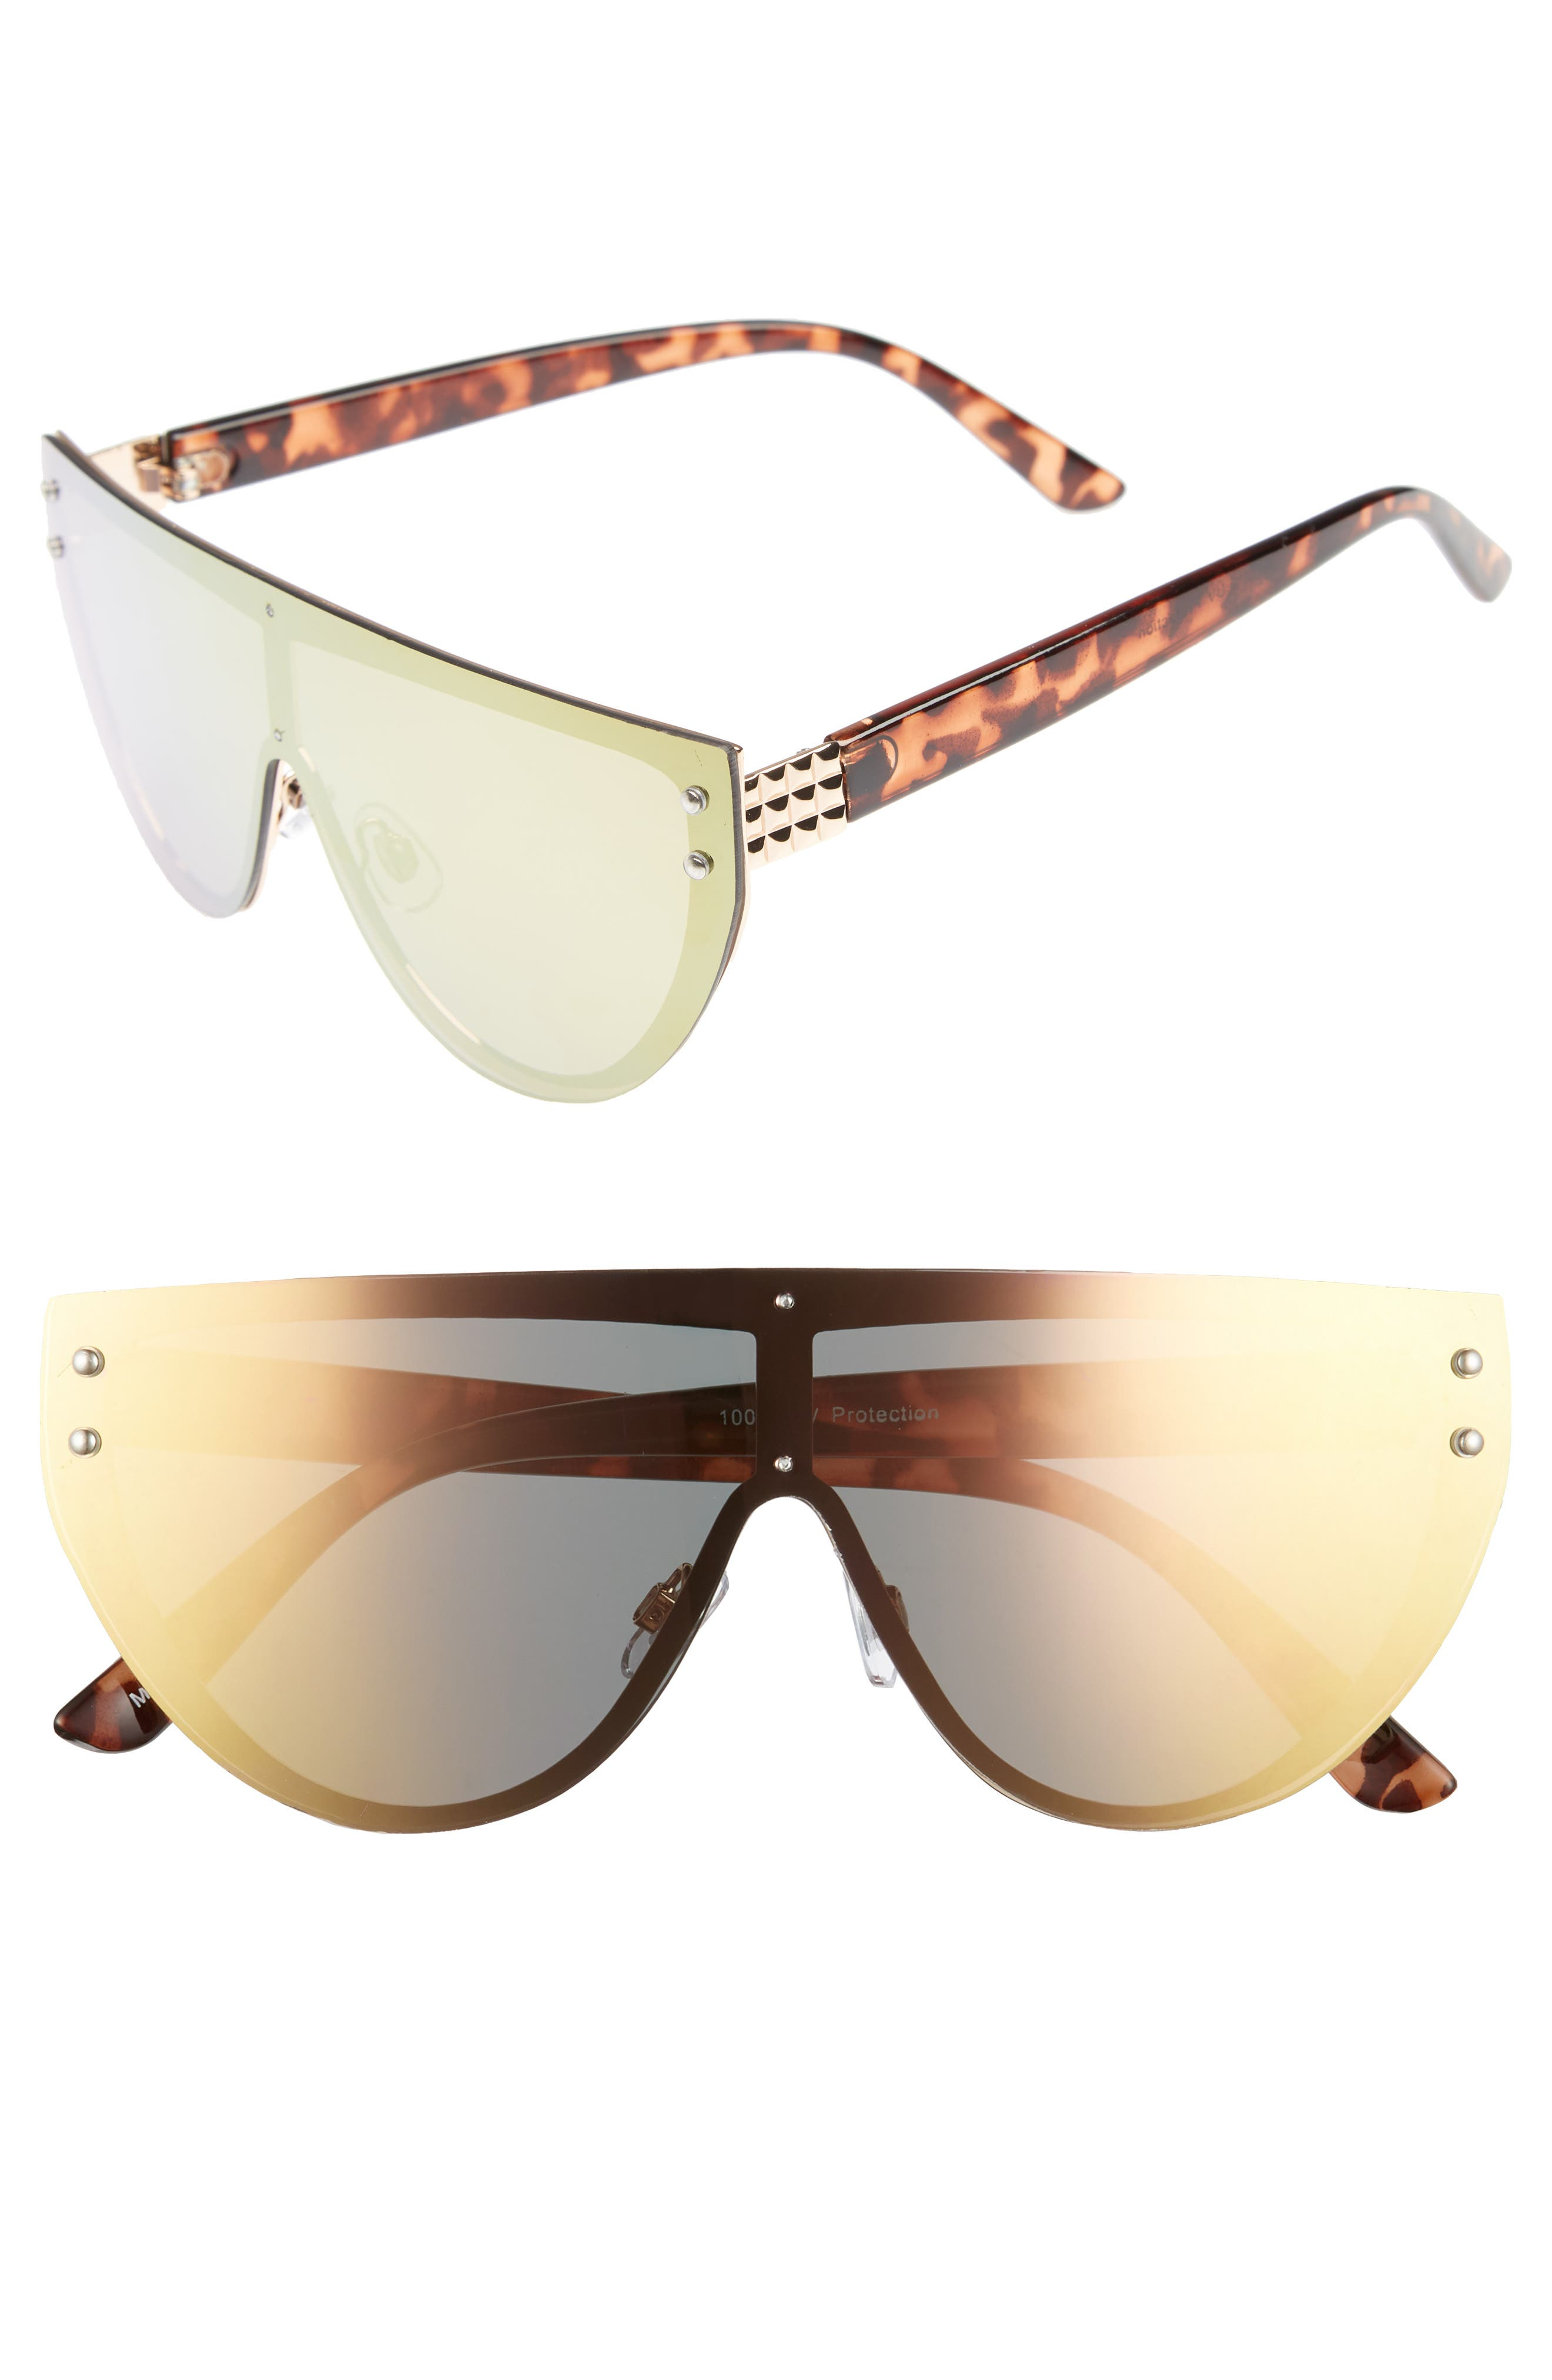 57mm Mirrored Rimless Shield Sunglasses,                         Main,                         color, Tort/ Pink Mirror